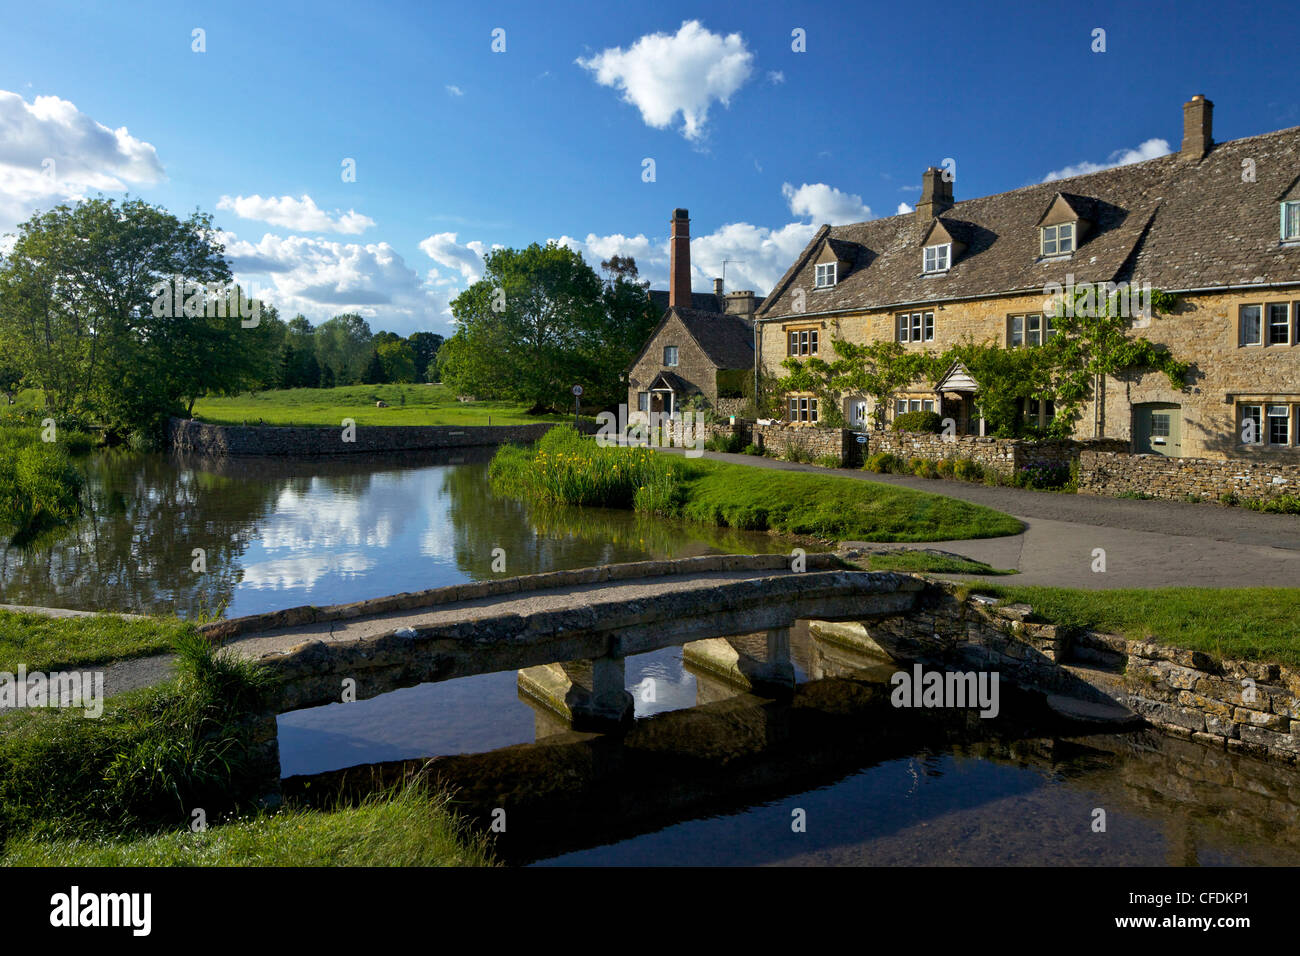 River Eye flowing through the pretty village of Lower Slaughter, the Cotswolds, Gloucestershire, England, United - Stock Image